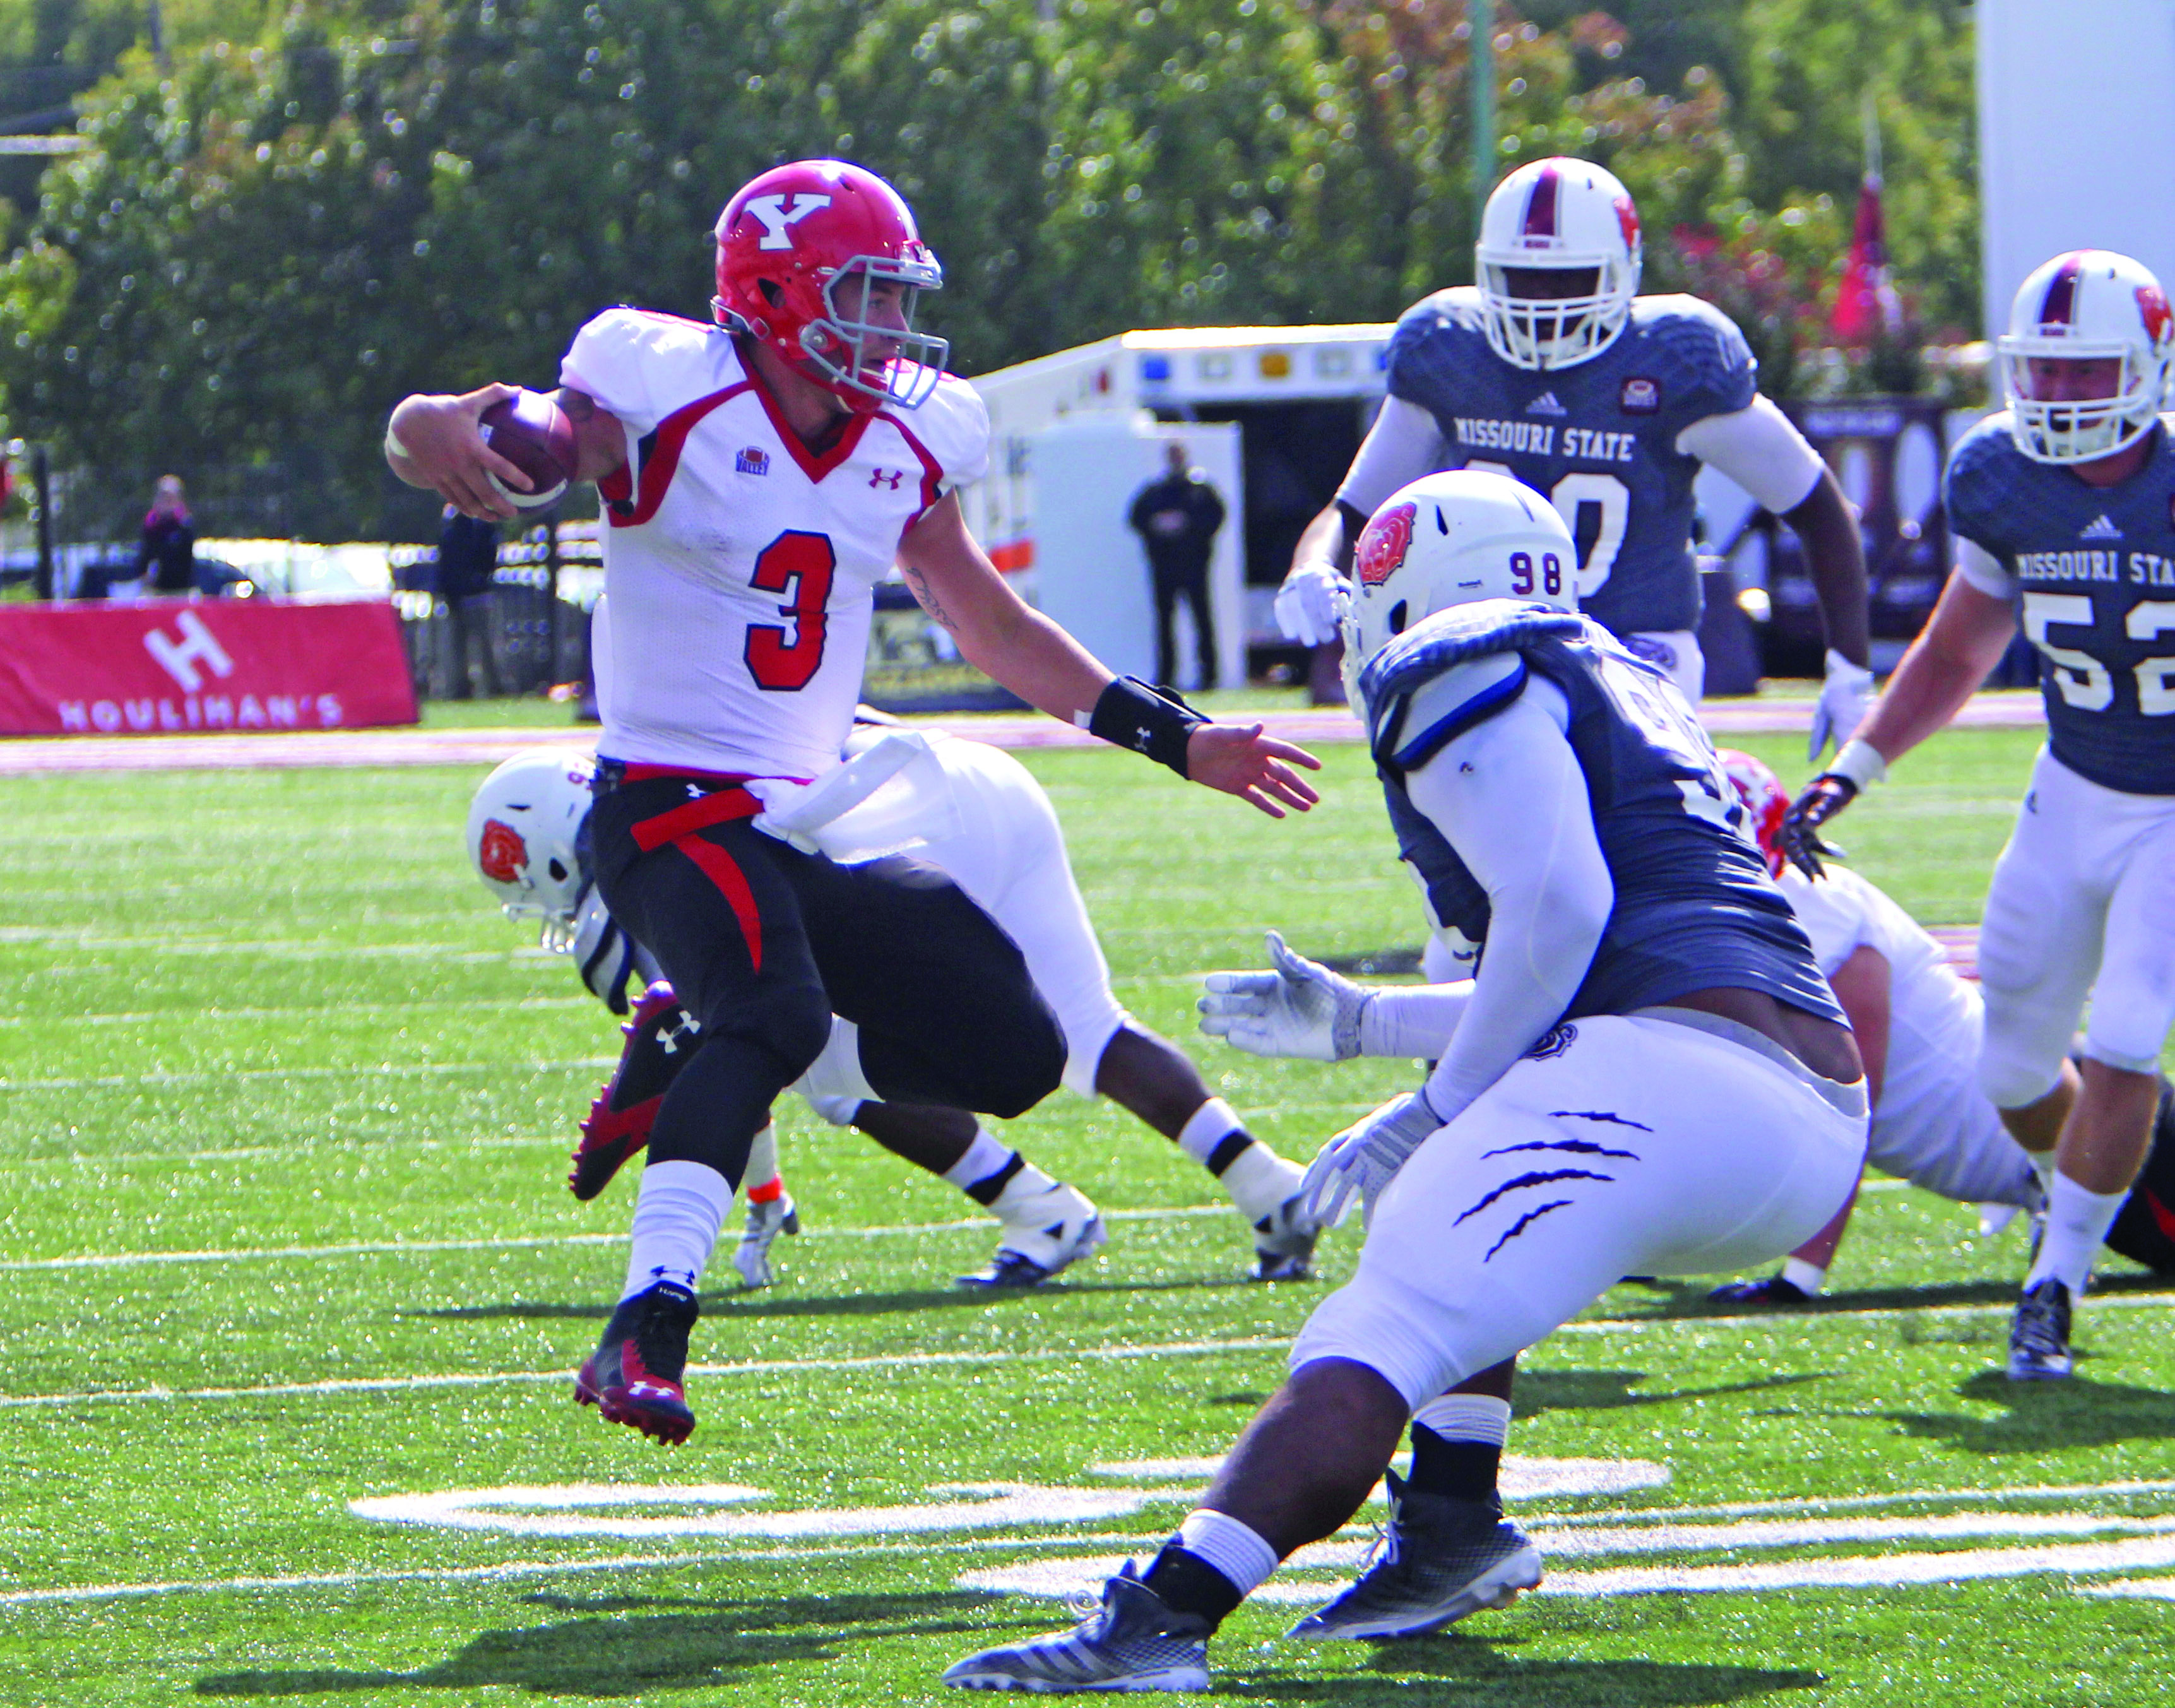 ysu cracks top 10 and implements new practice schedule - the jambar